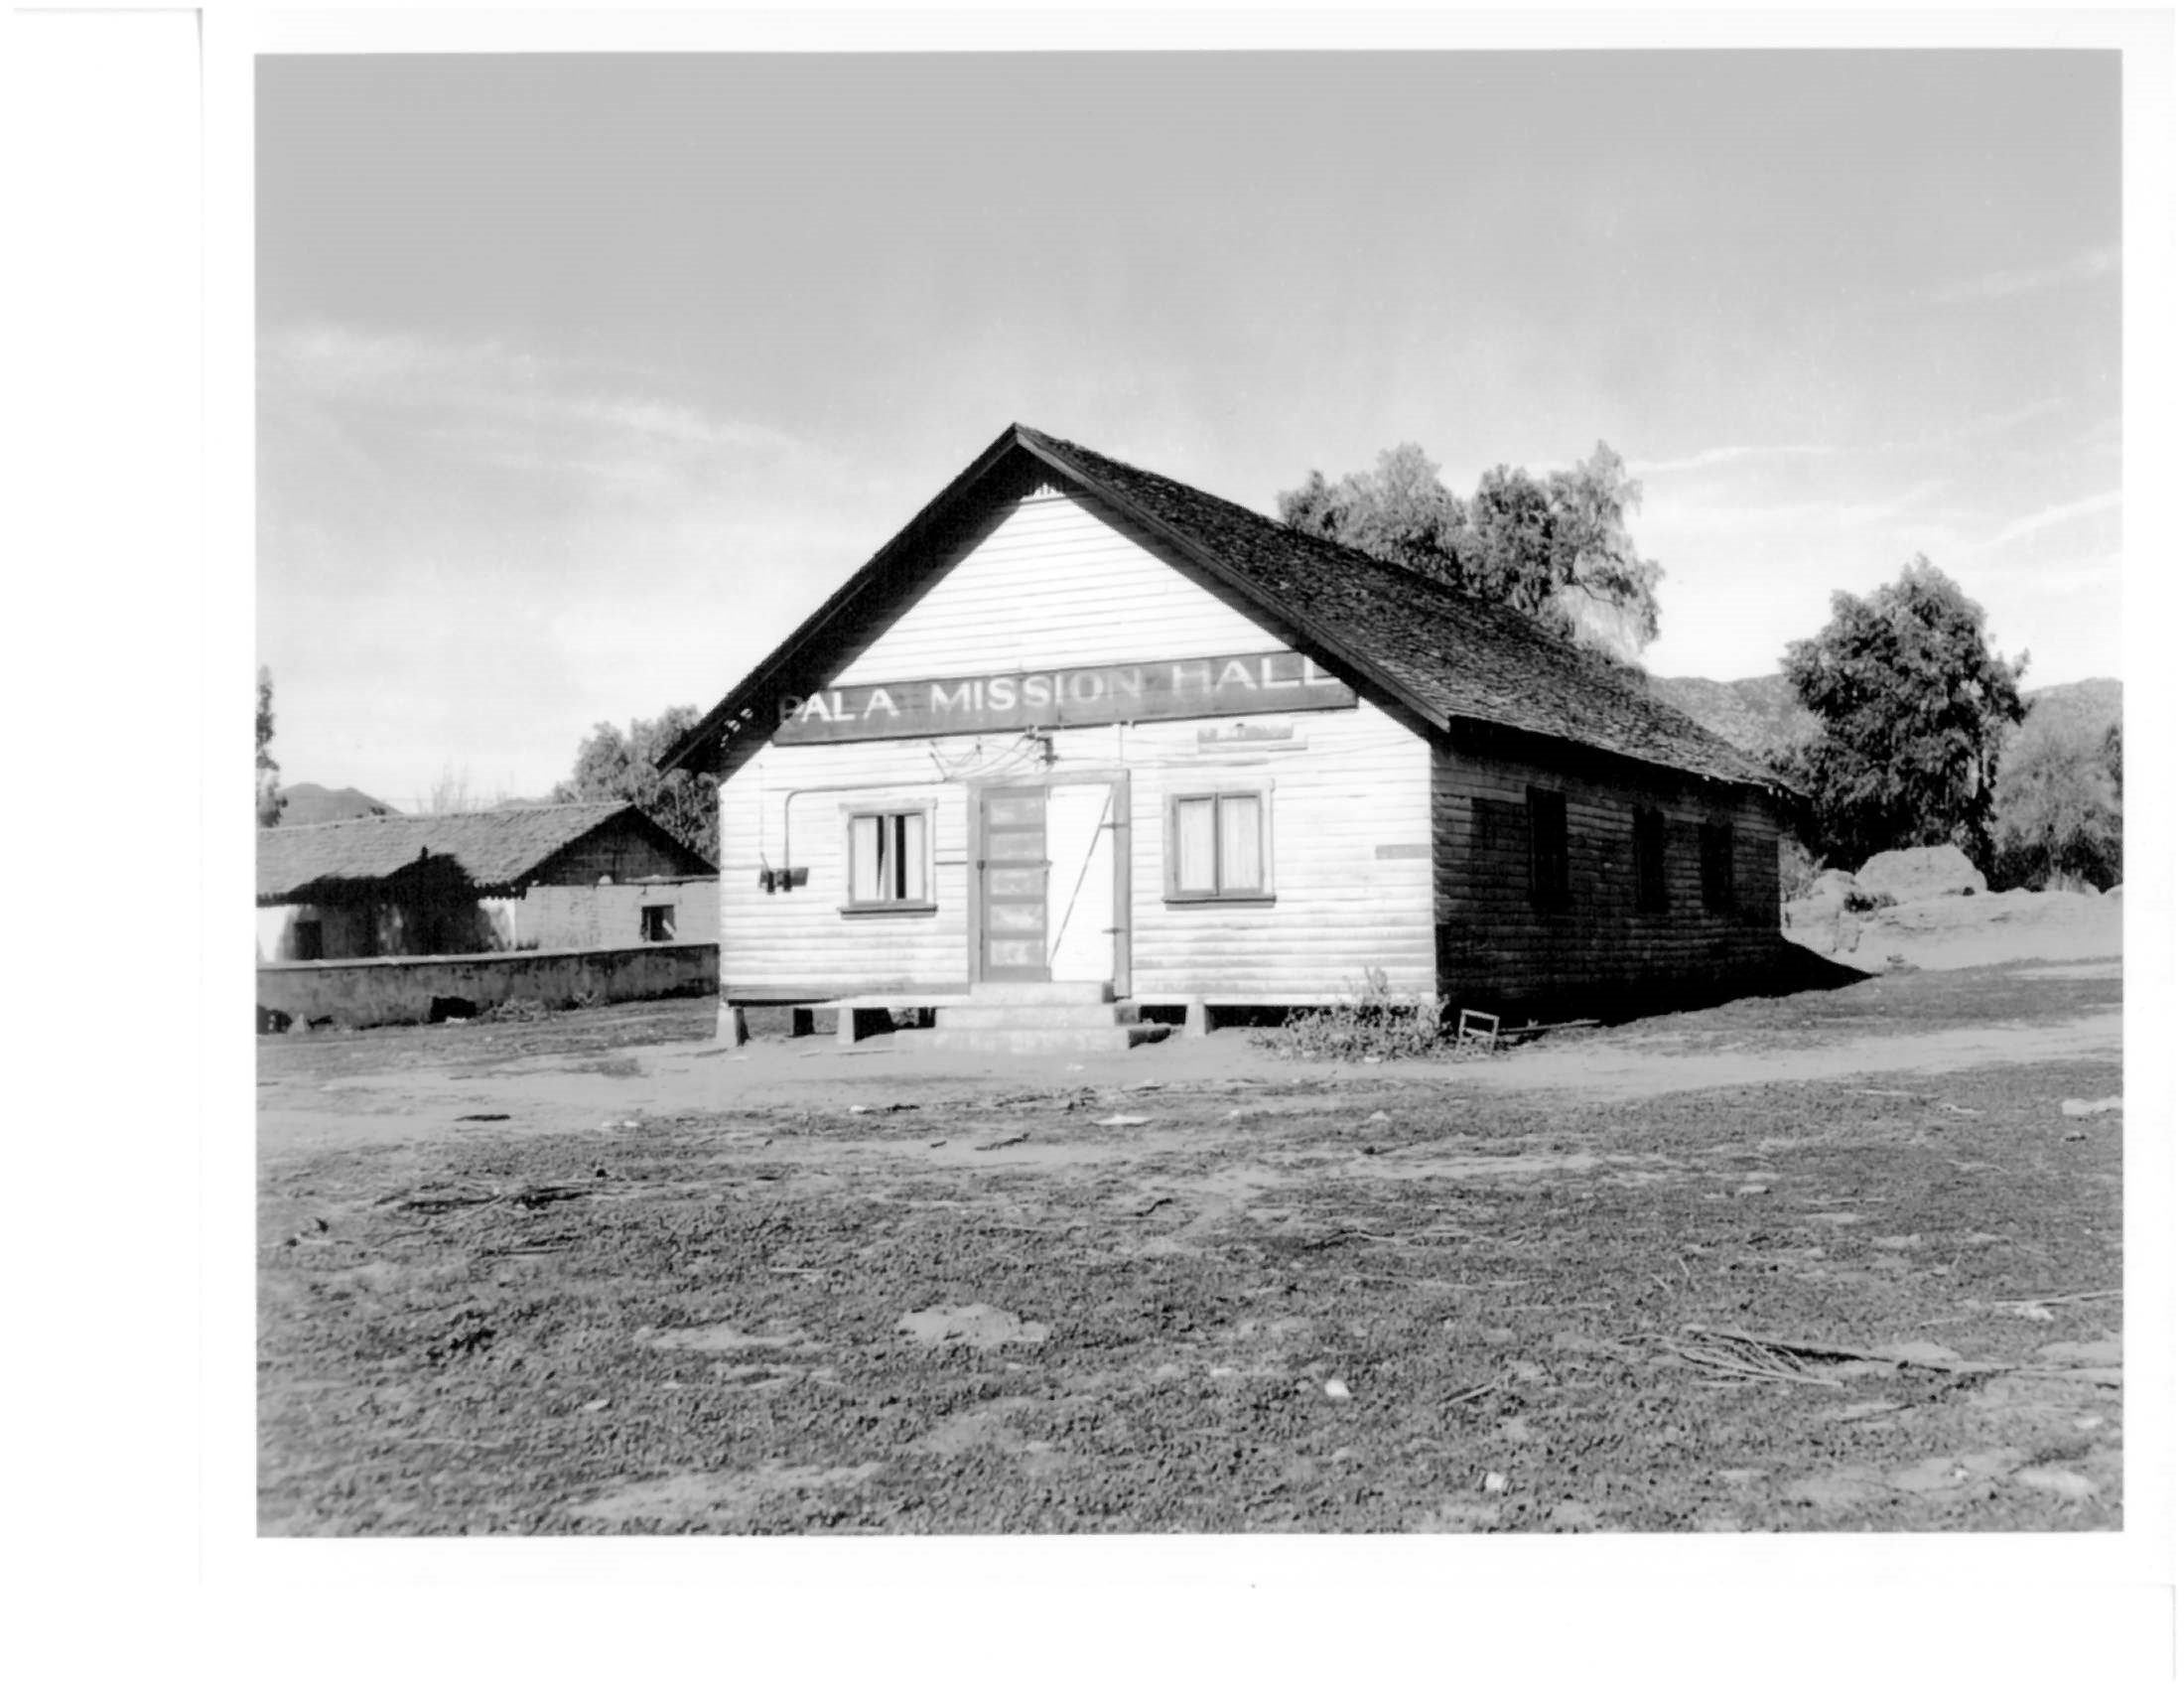 "Old photograph of wooden building on piles with sign reading ""Pala Mission Hall"""